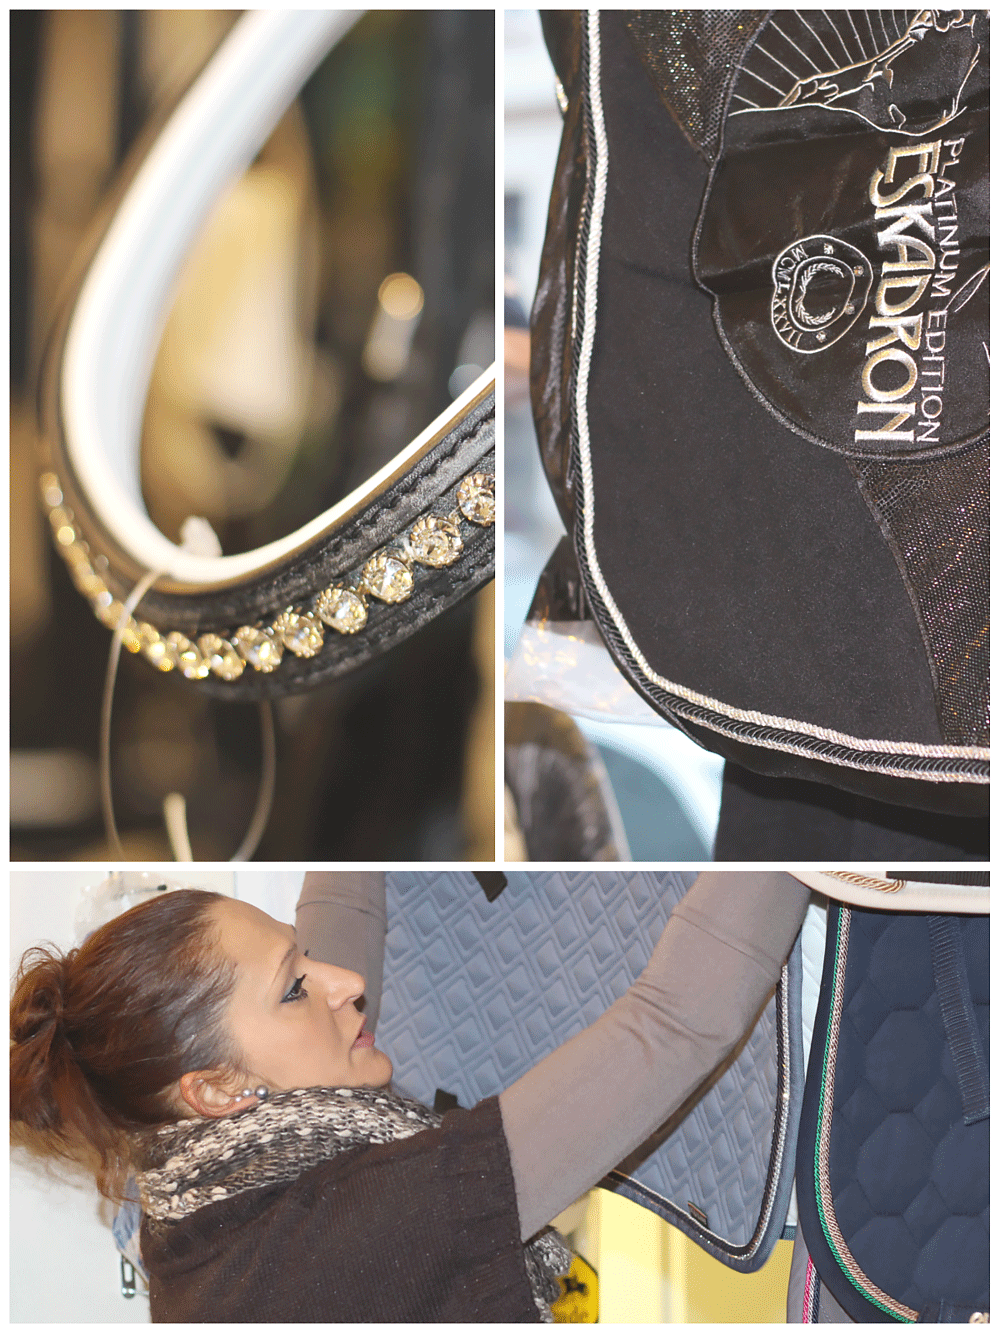 horseland-mk-reitsport-onlineshop